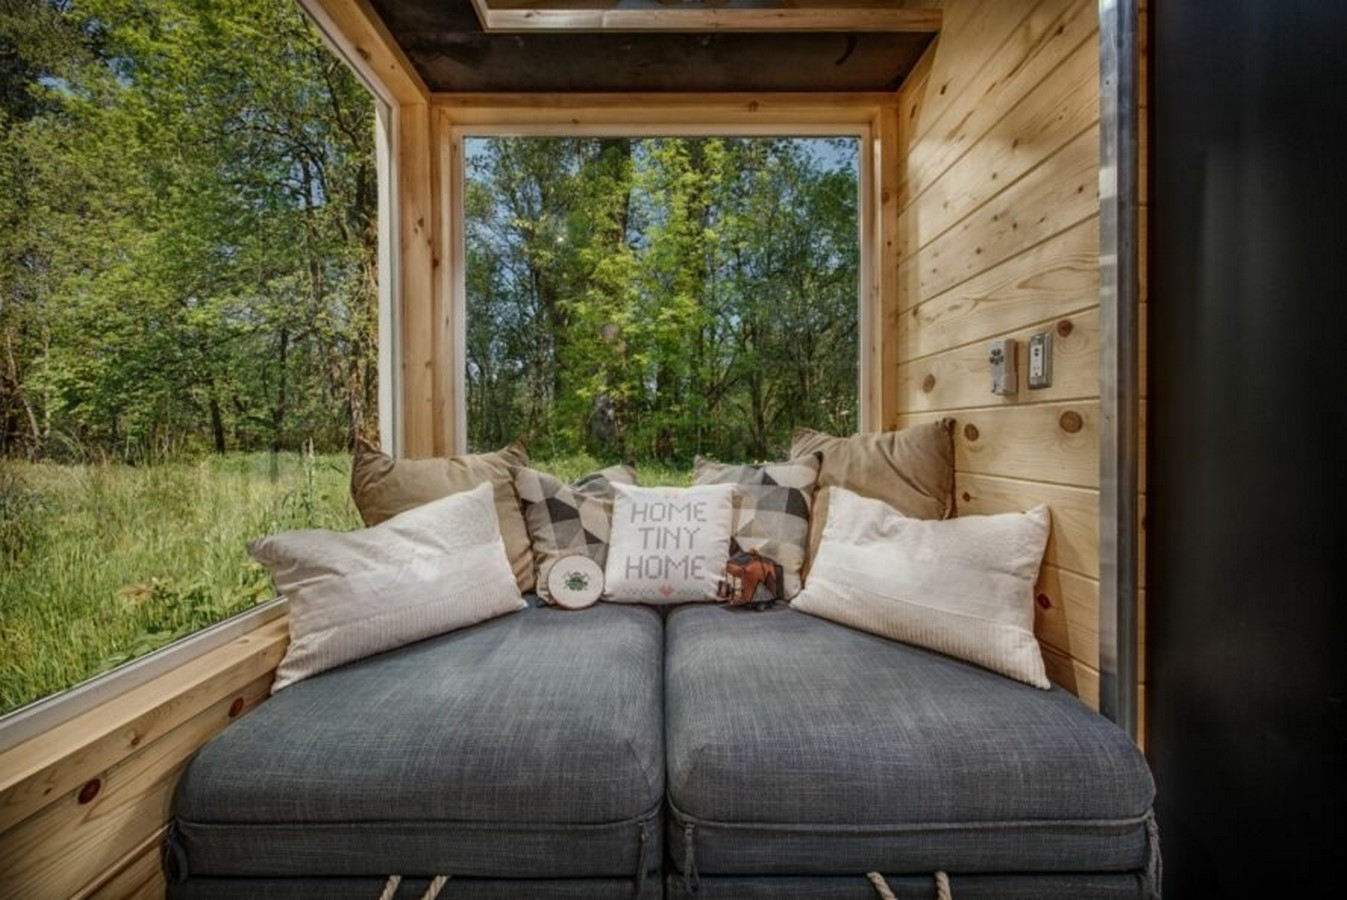 20 Trendy space saving solutions for tiny homes - Sheet3